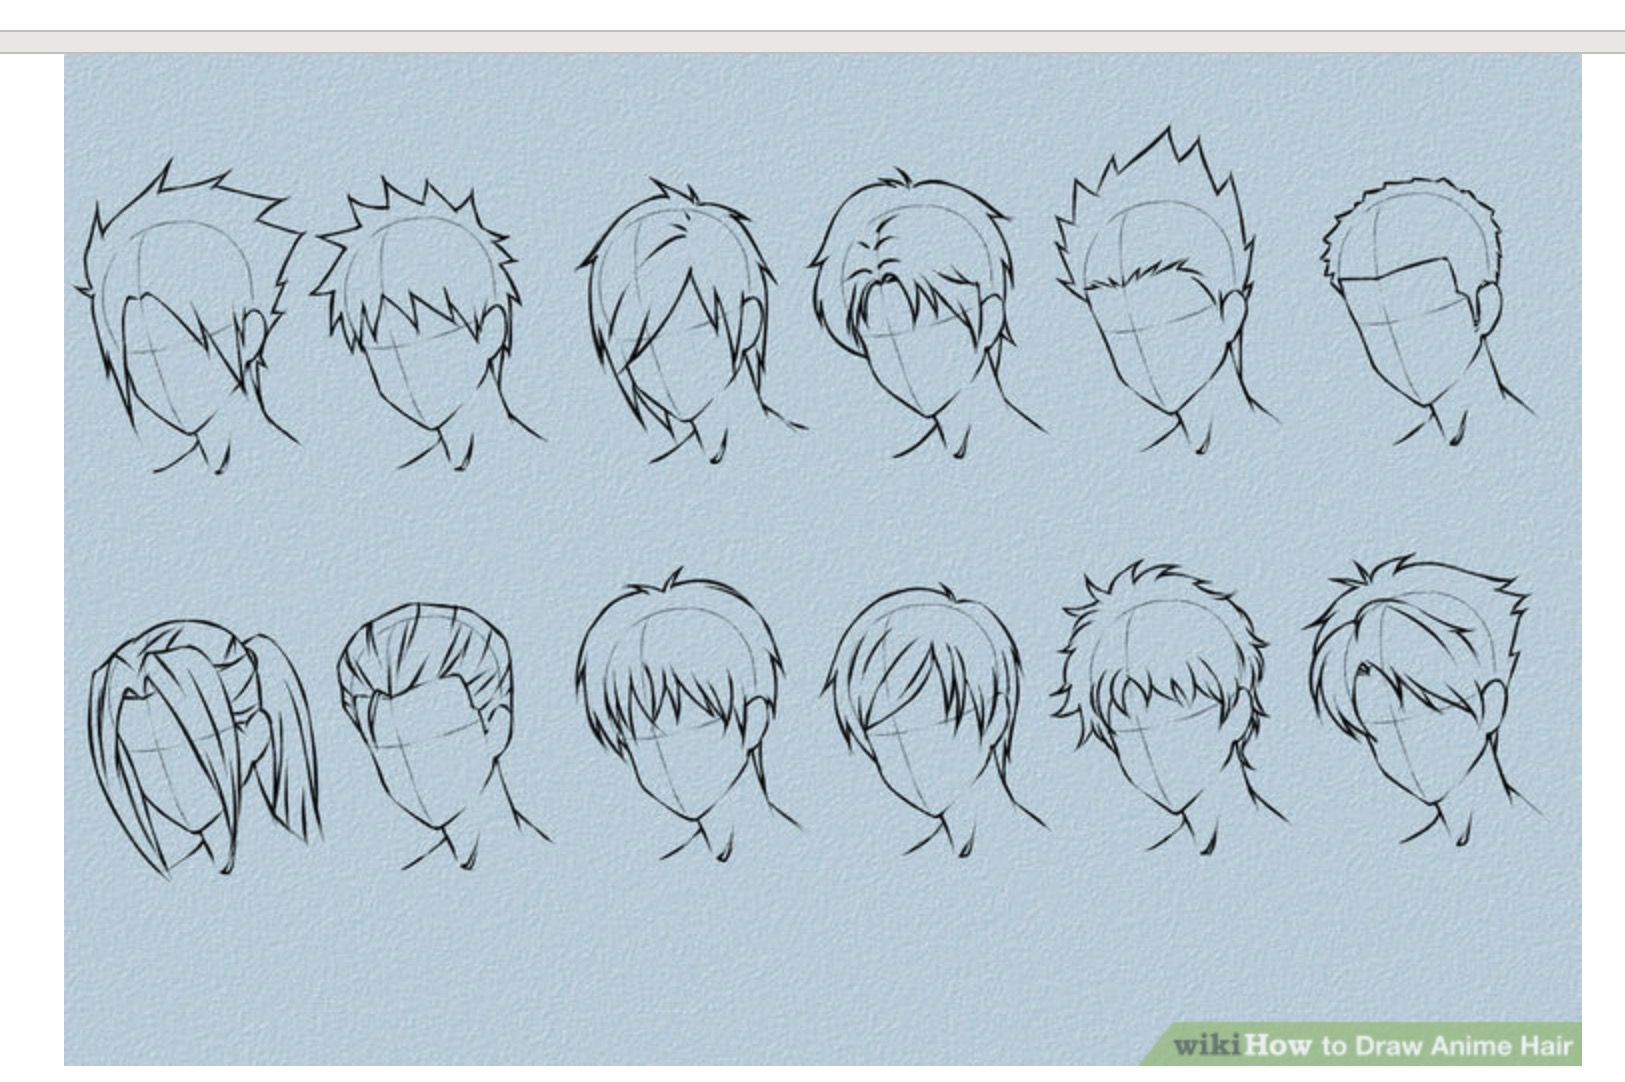 Pin By Sarah Juarez On Drawings How To Draw Anime Hair Manga Hair Anime Hair